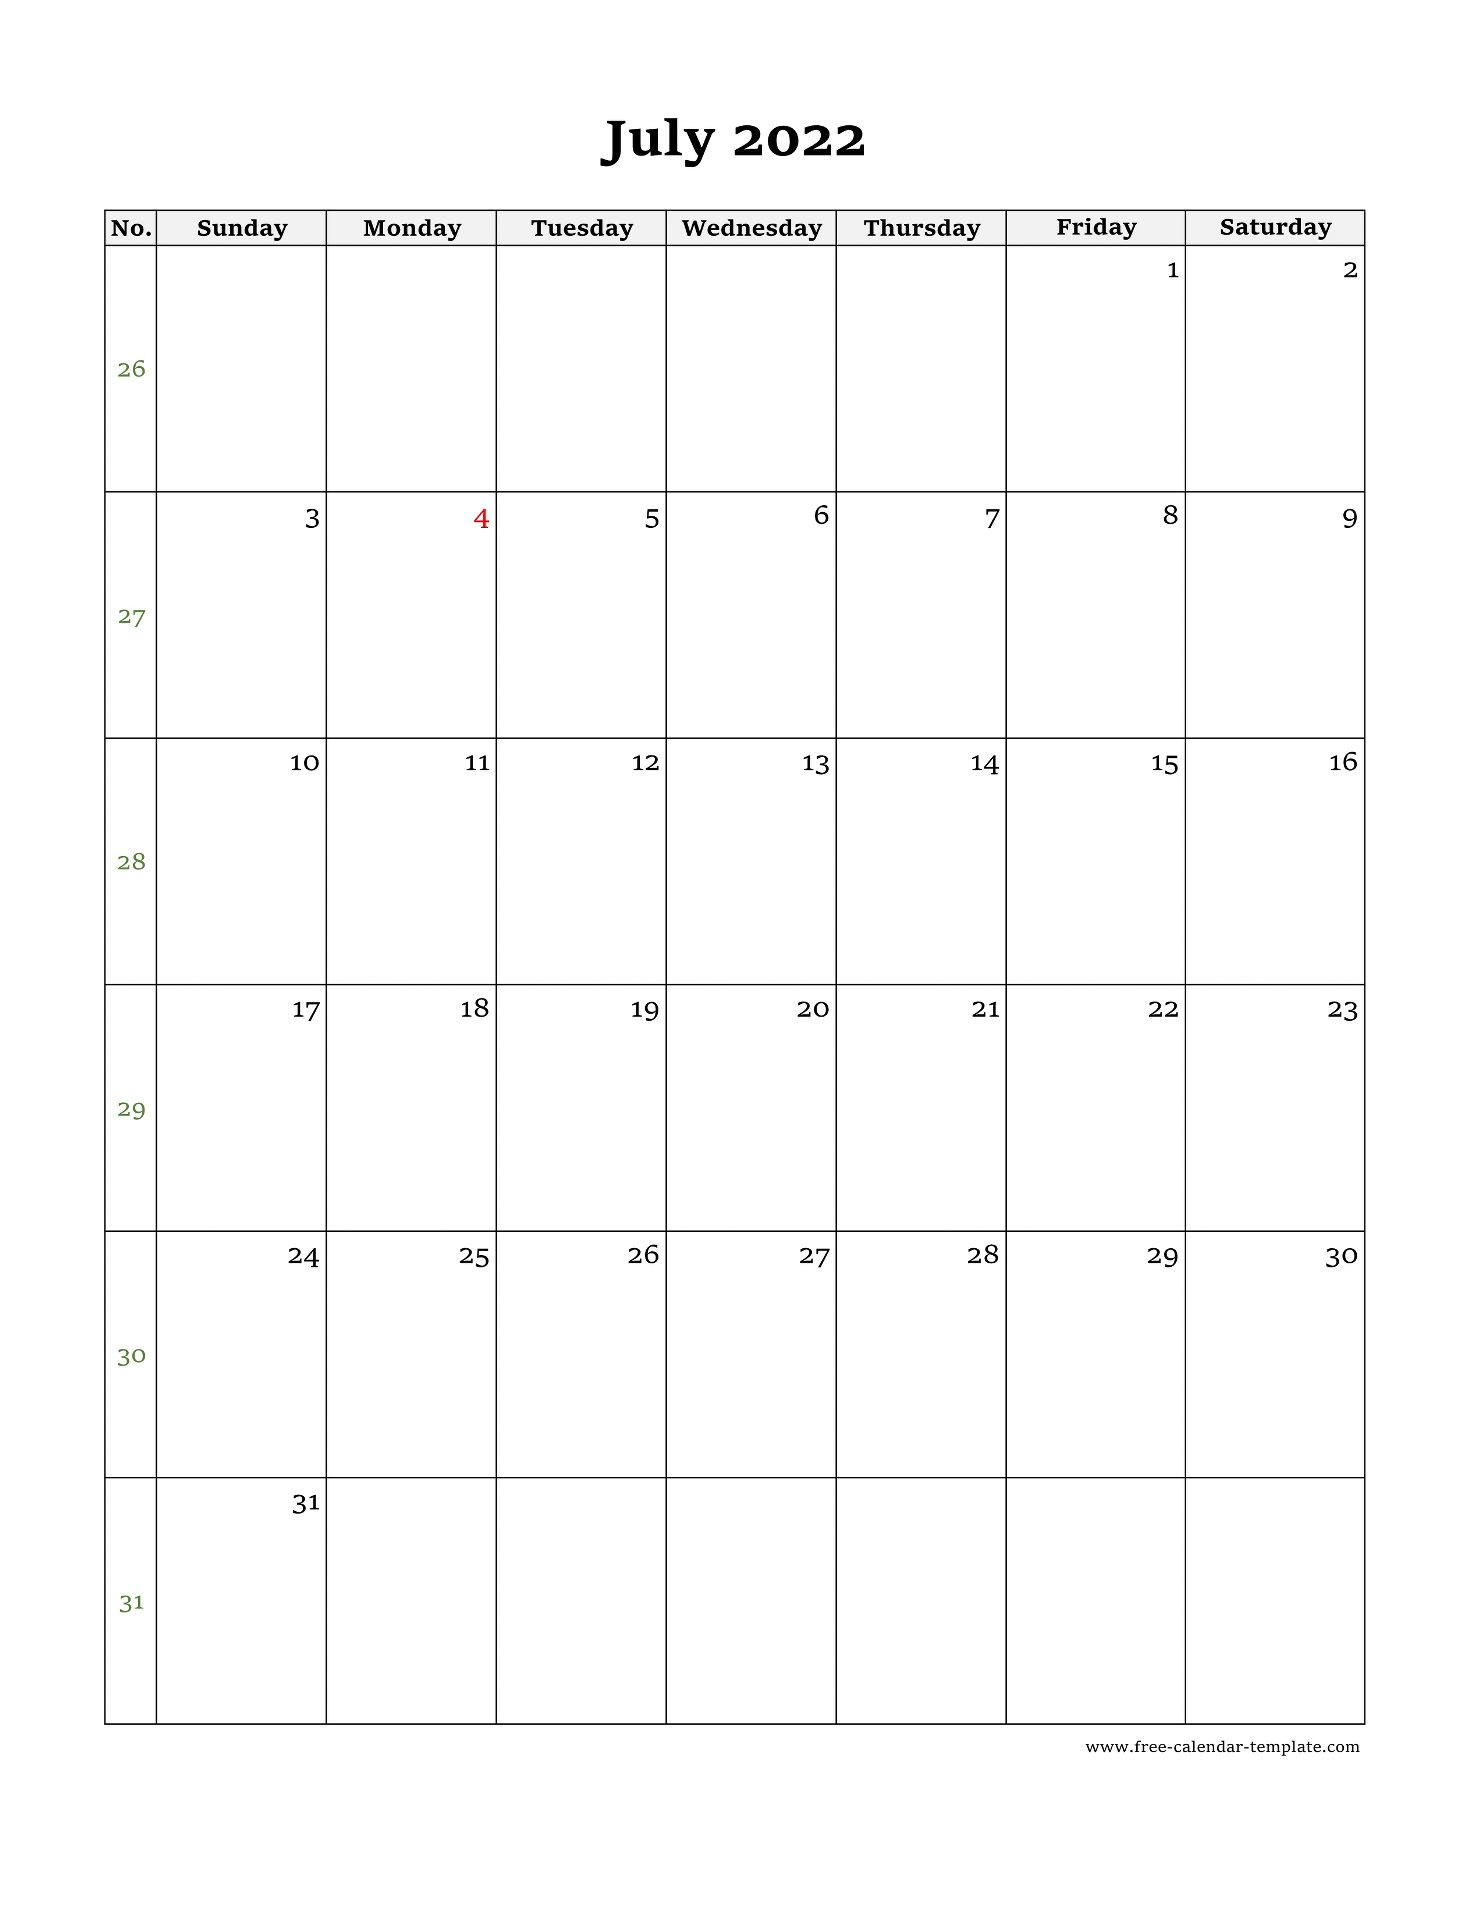 June July 2022 Calendar.July Calendar 2022 Simple Design With Large Box On Each Day For Notes Free Calendar Template Com